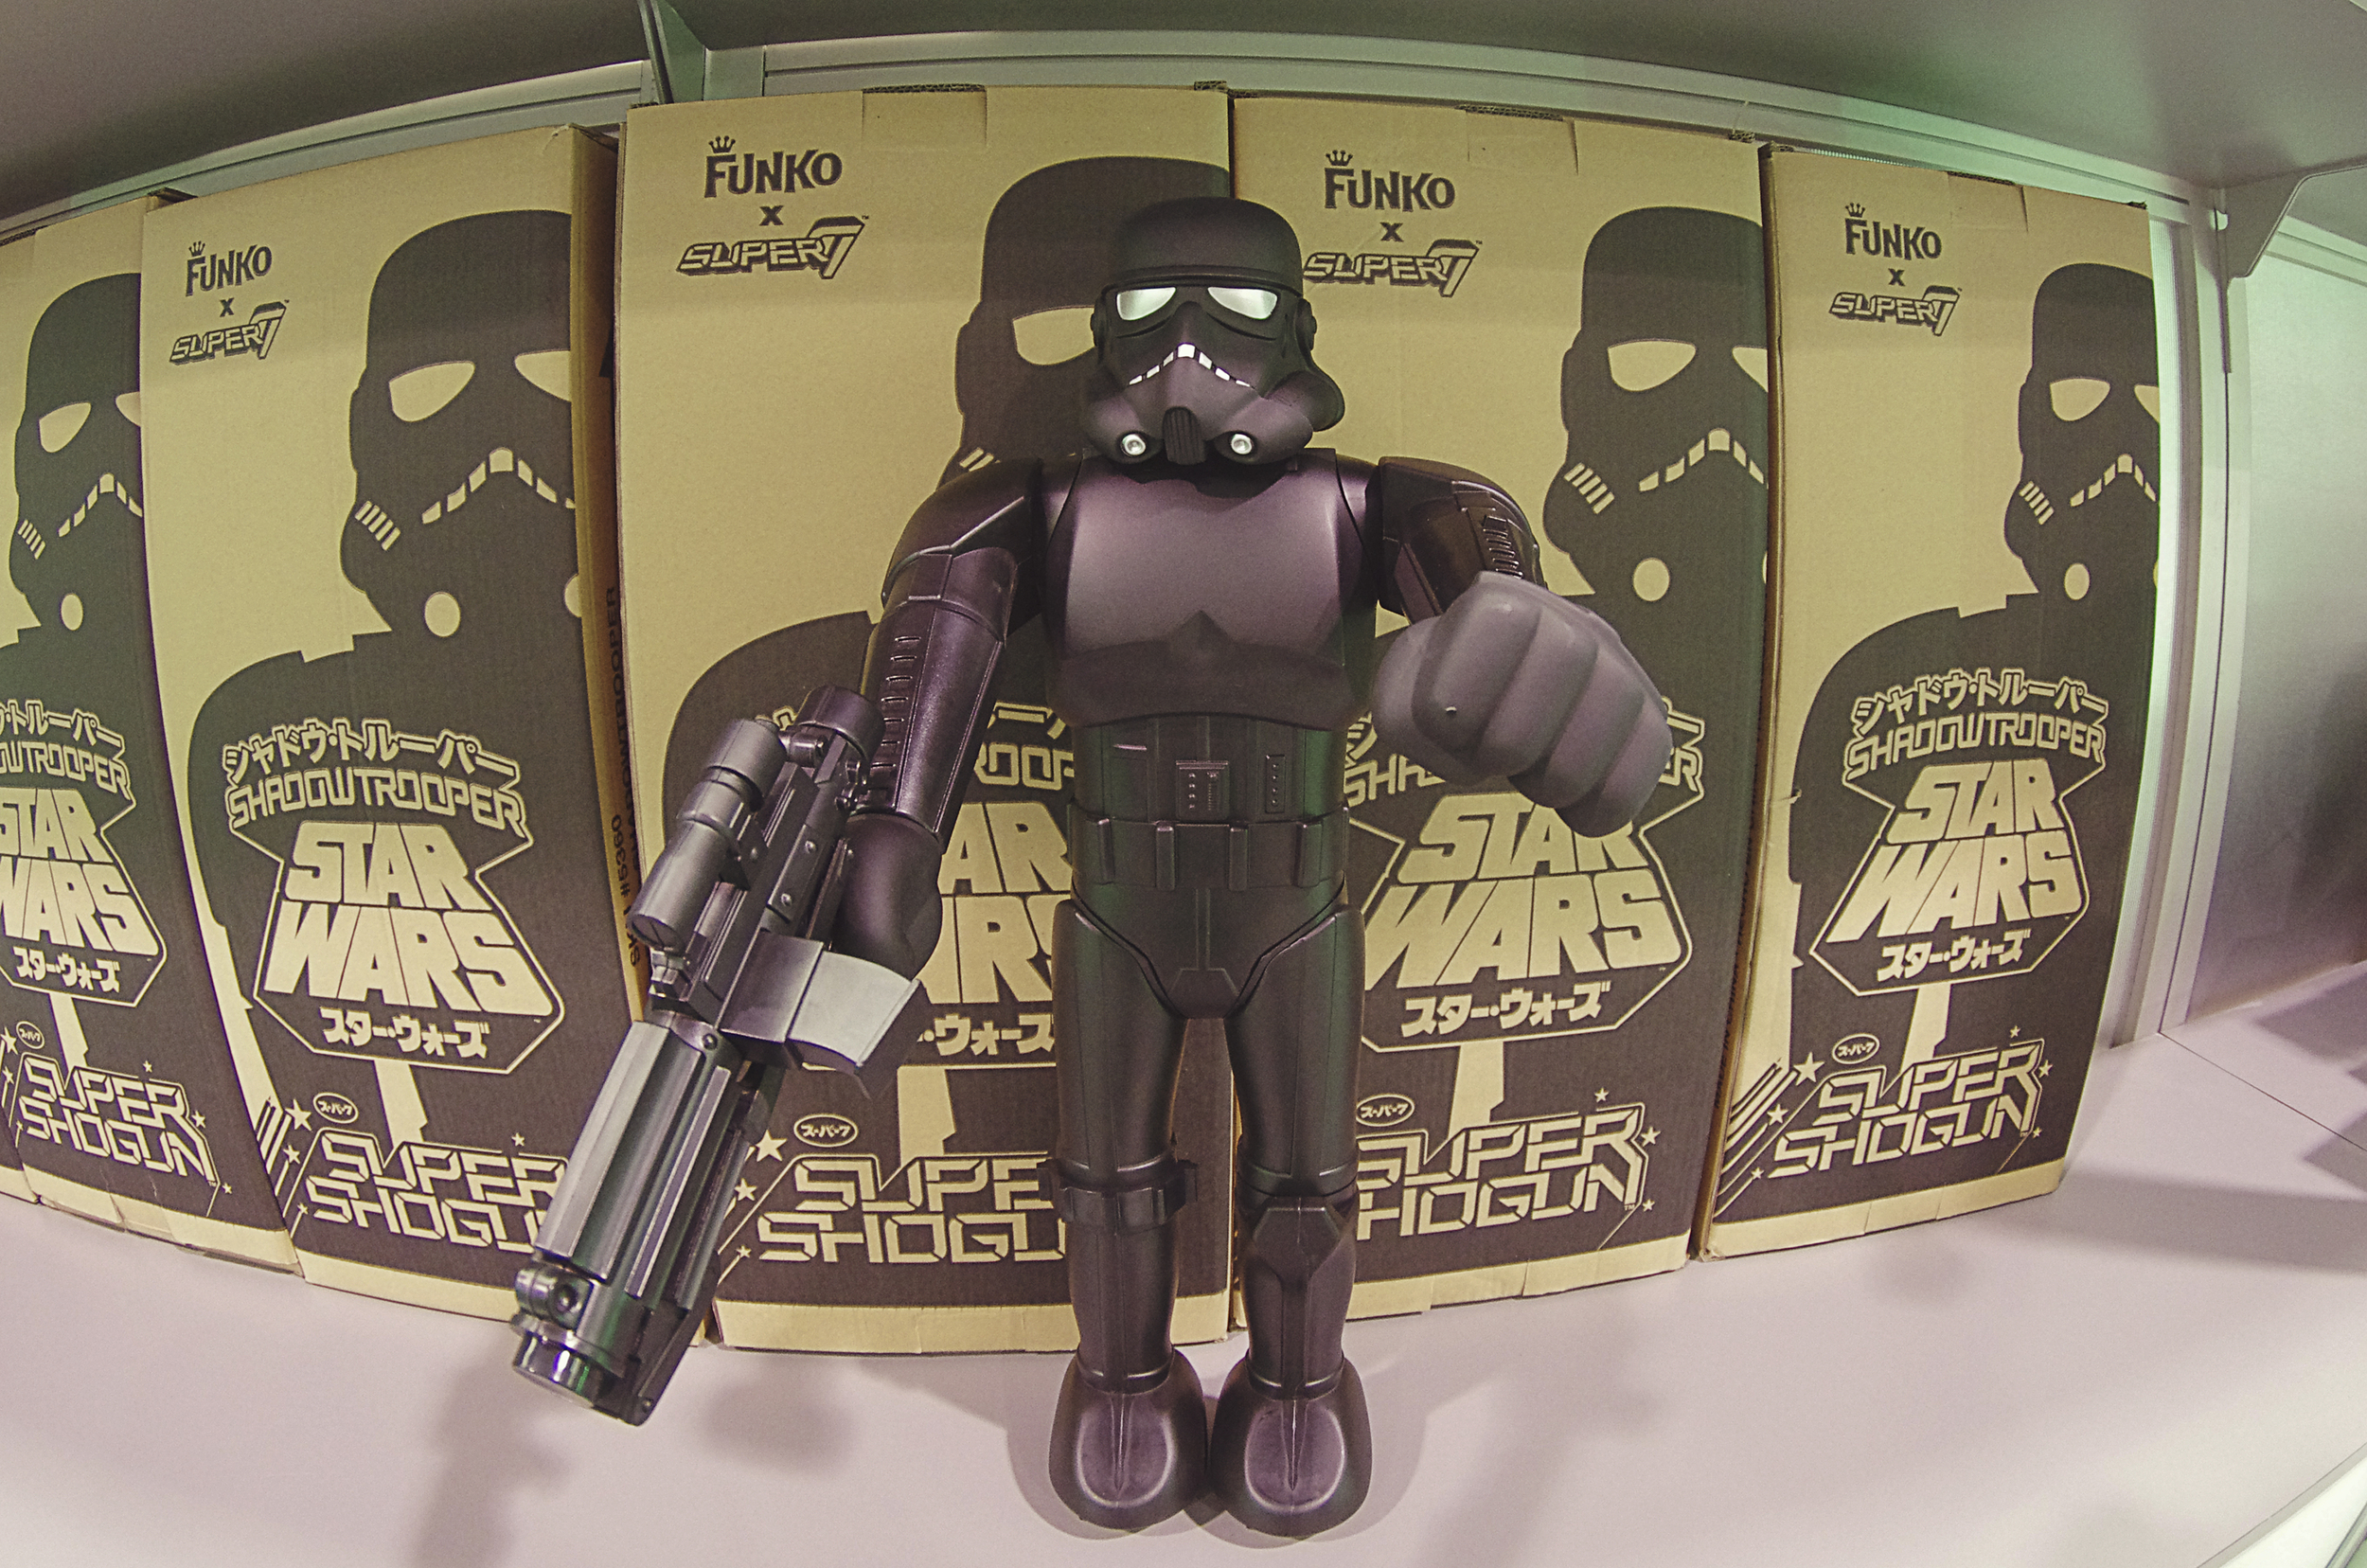 Our buddies over at Super7 even had an exclusive Shadow Trooper for Star Wars Celebration. Kris should probably send us one to review for our blog.